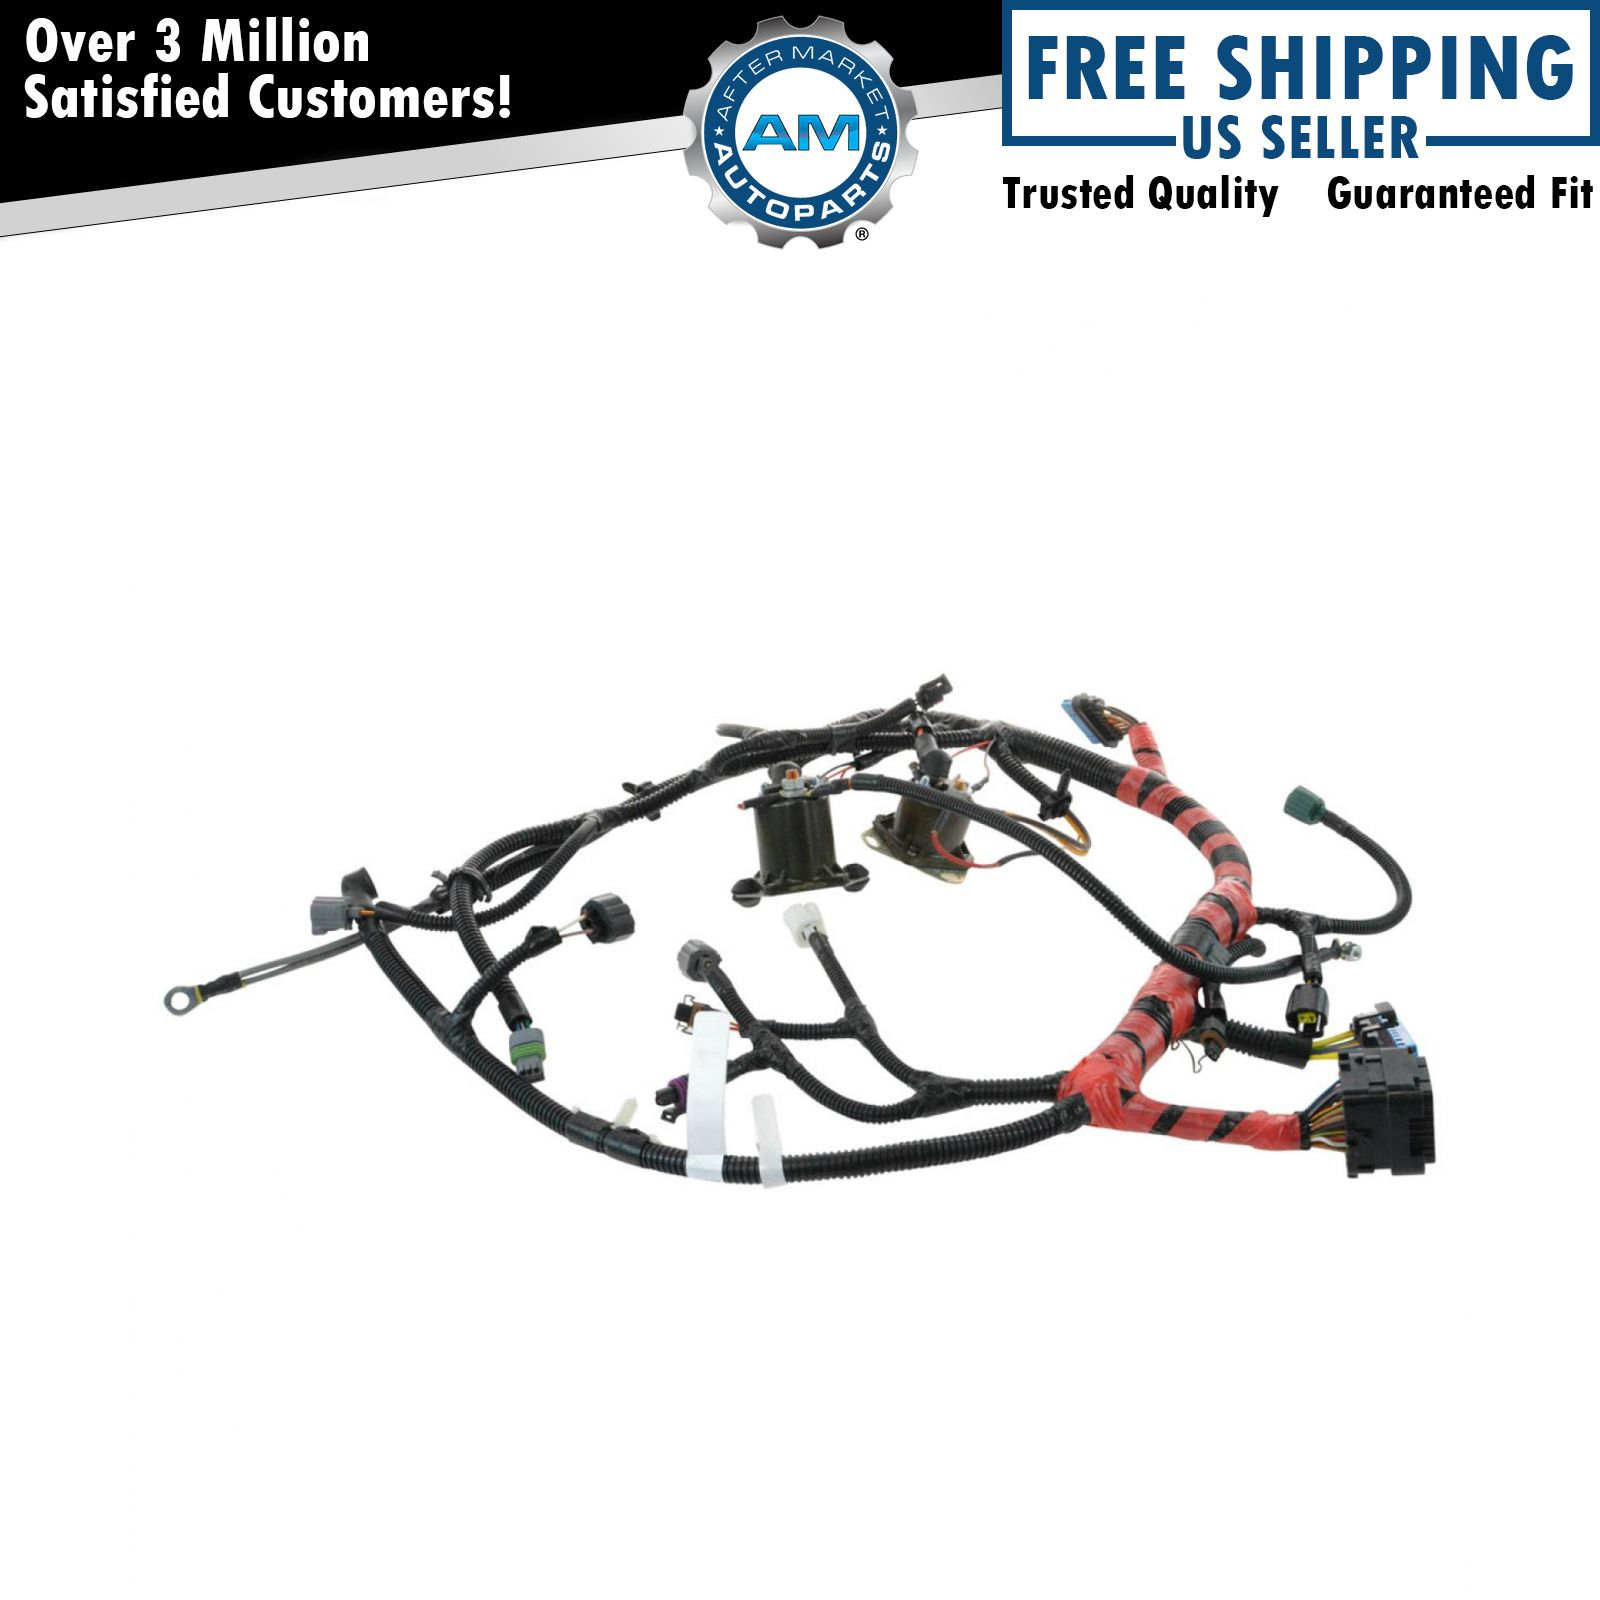 4x4 Harness Auto Electrical Wiring Diagram Gl1800 Honda Communication Oem F81z12b637fa Main Engine For Super Duty